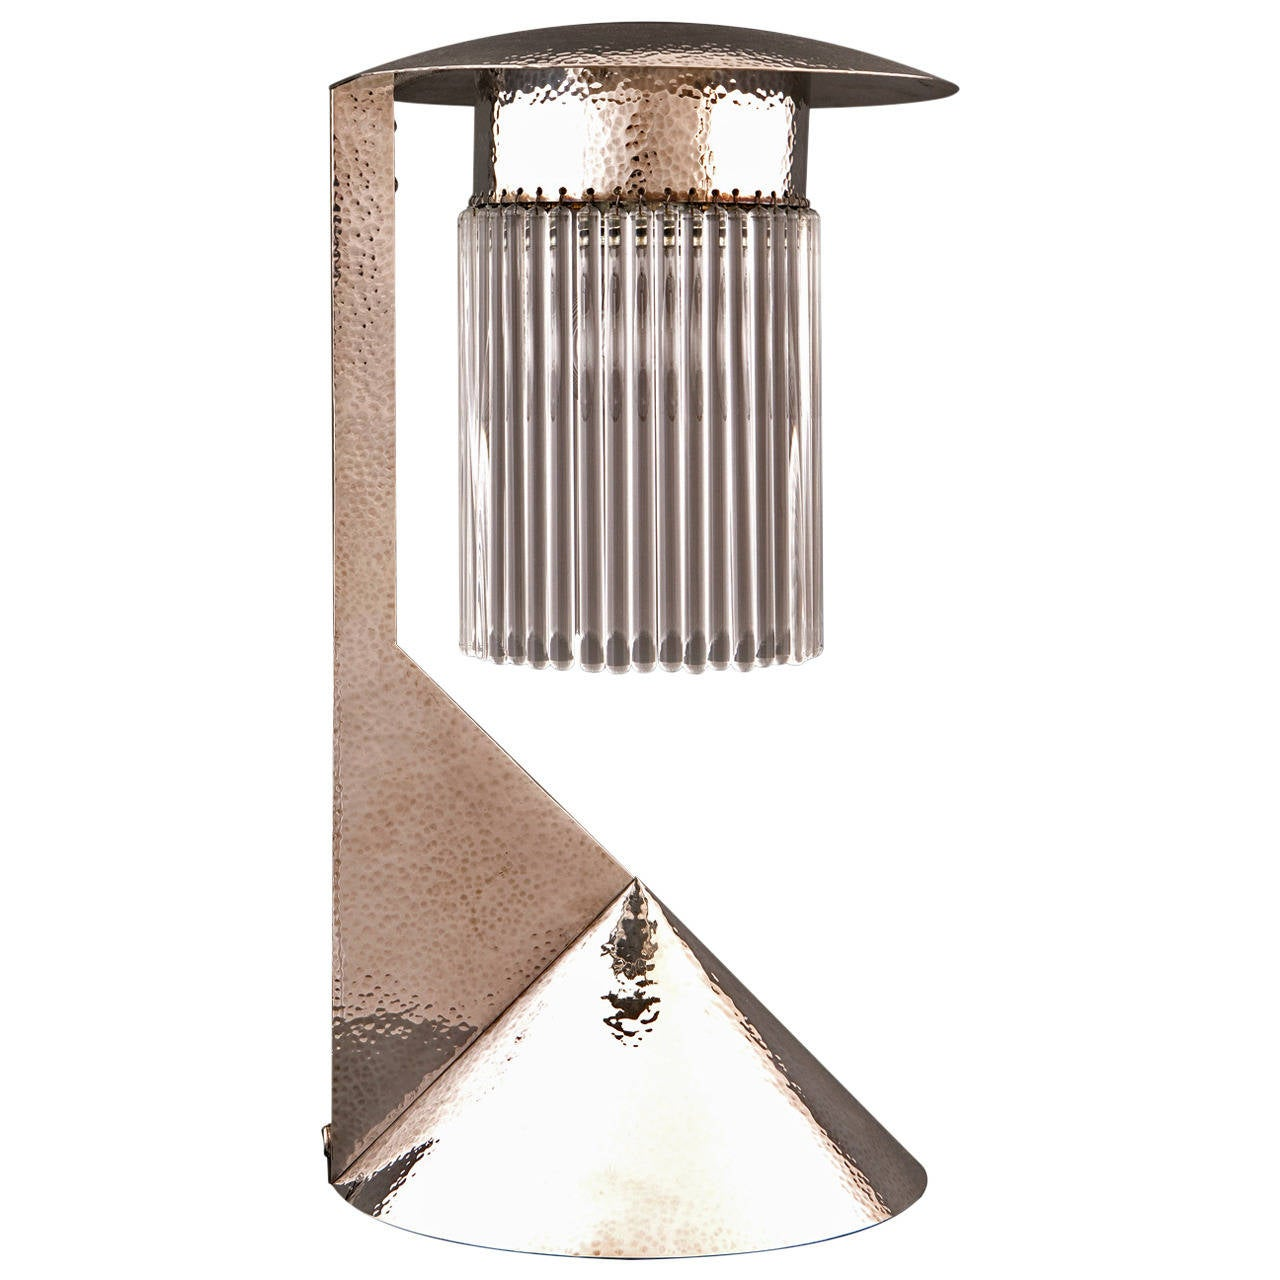 Koloman Moser Designed Solid Silver Lamp Reproduced by Woka Lamps, 2003